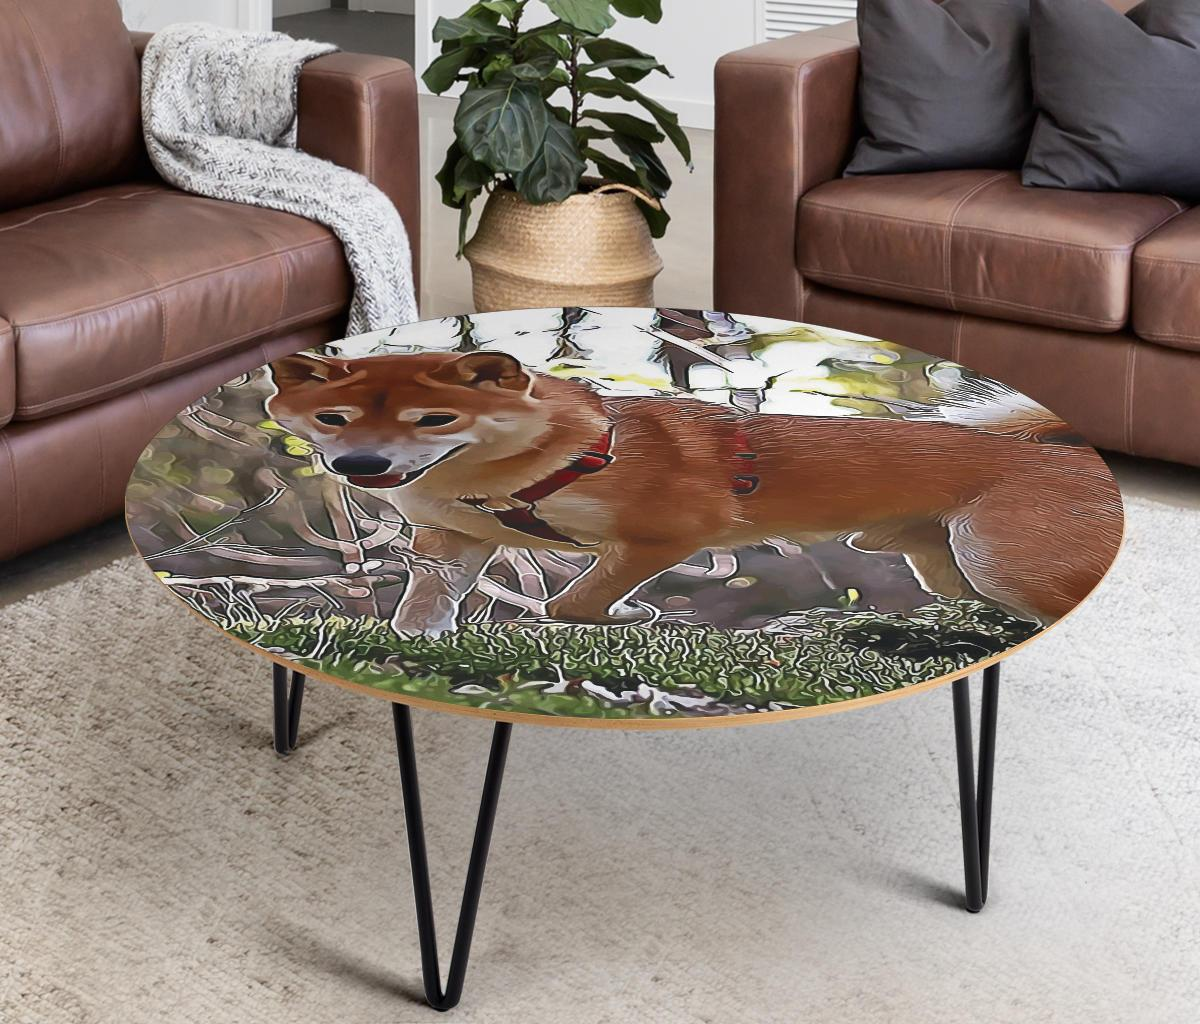 Personalized Table